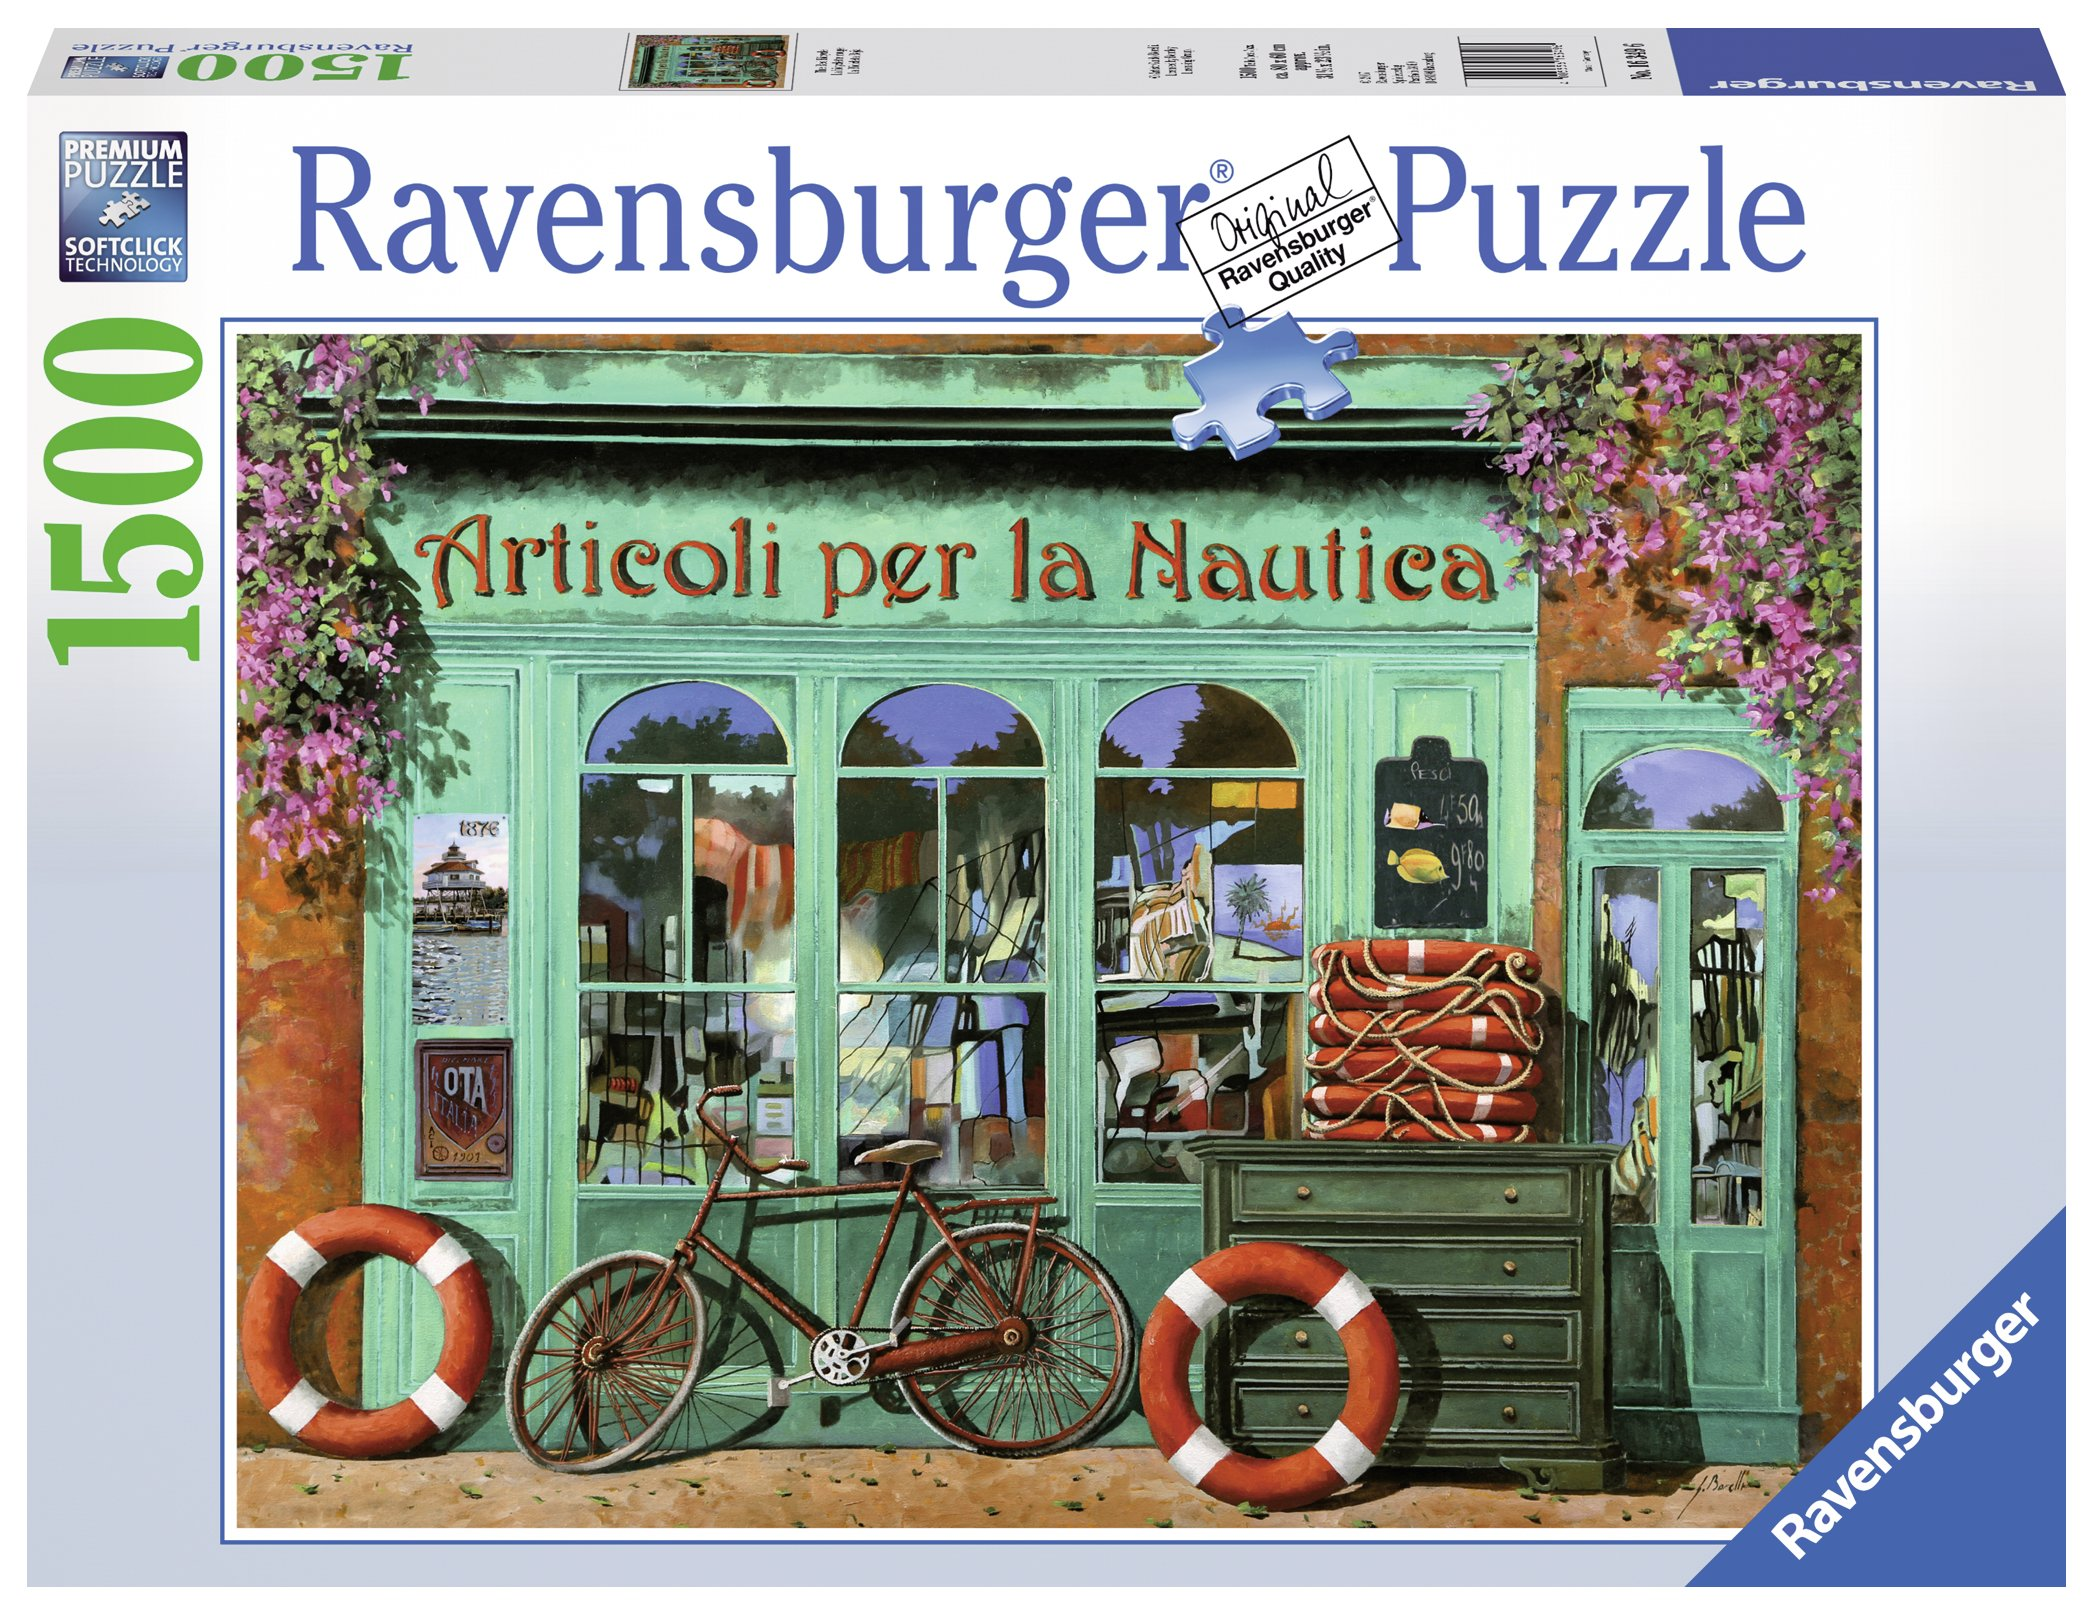 Ravensburger The Red Bicycle 1500 Piece Jigsaw Puzzle for Adults - Softclick Technology Means Pieces Fit Together Perfectly by Ravensburger